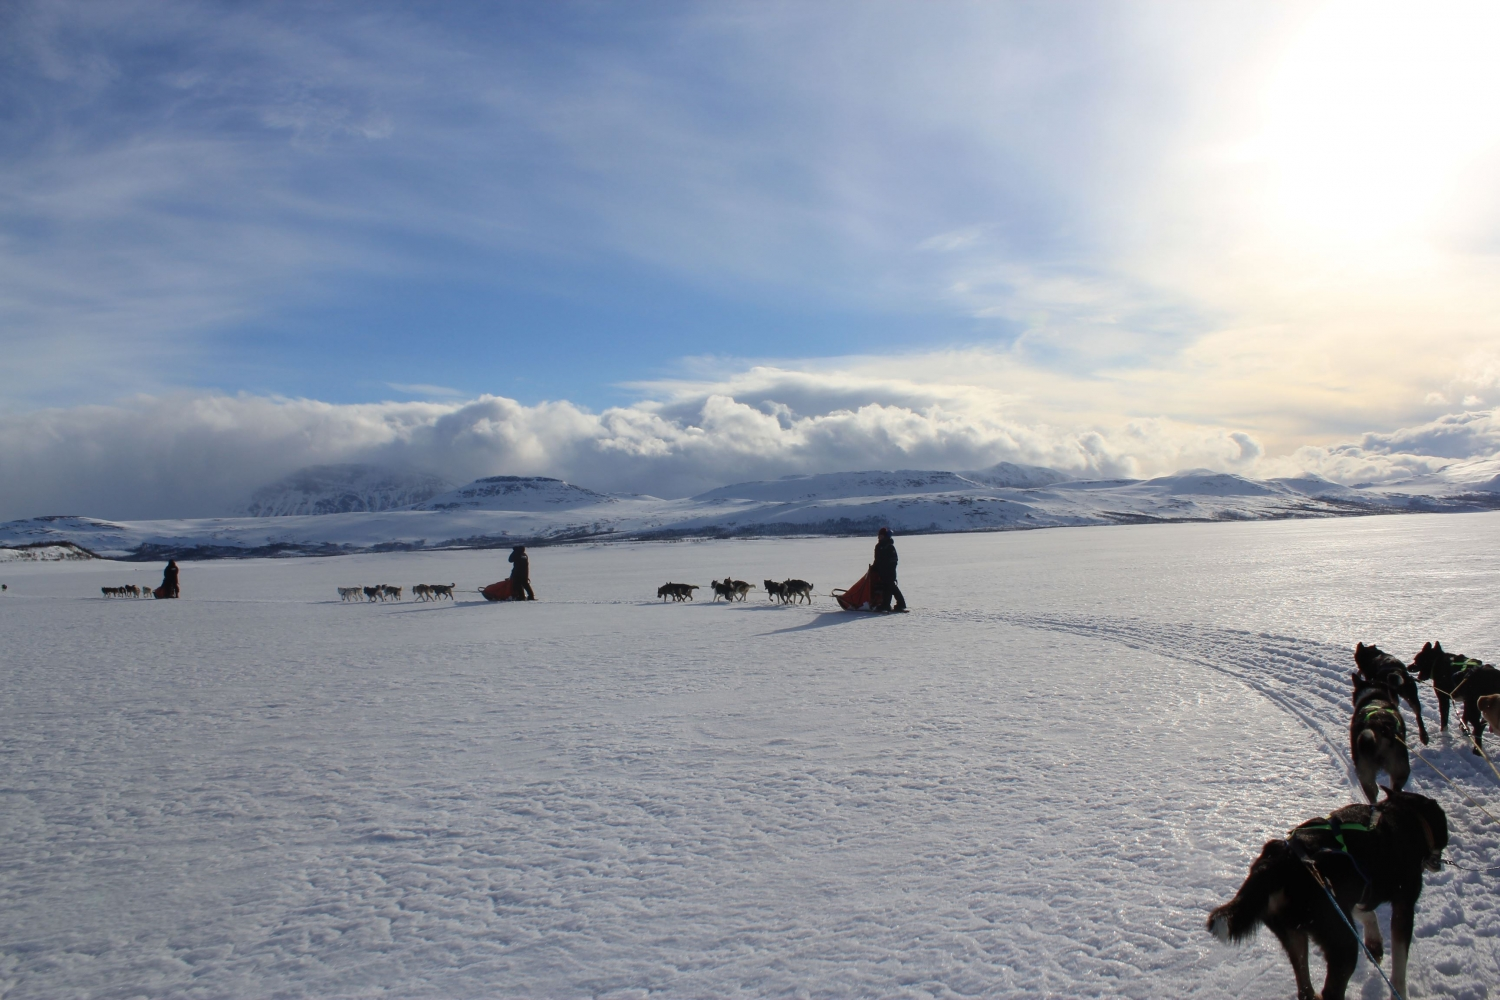 Dog sledding in Arctic winter landscape